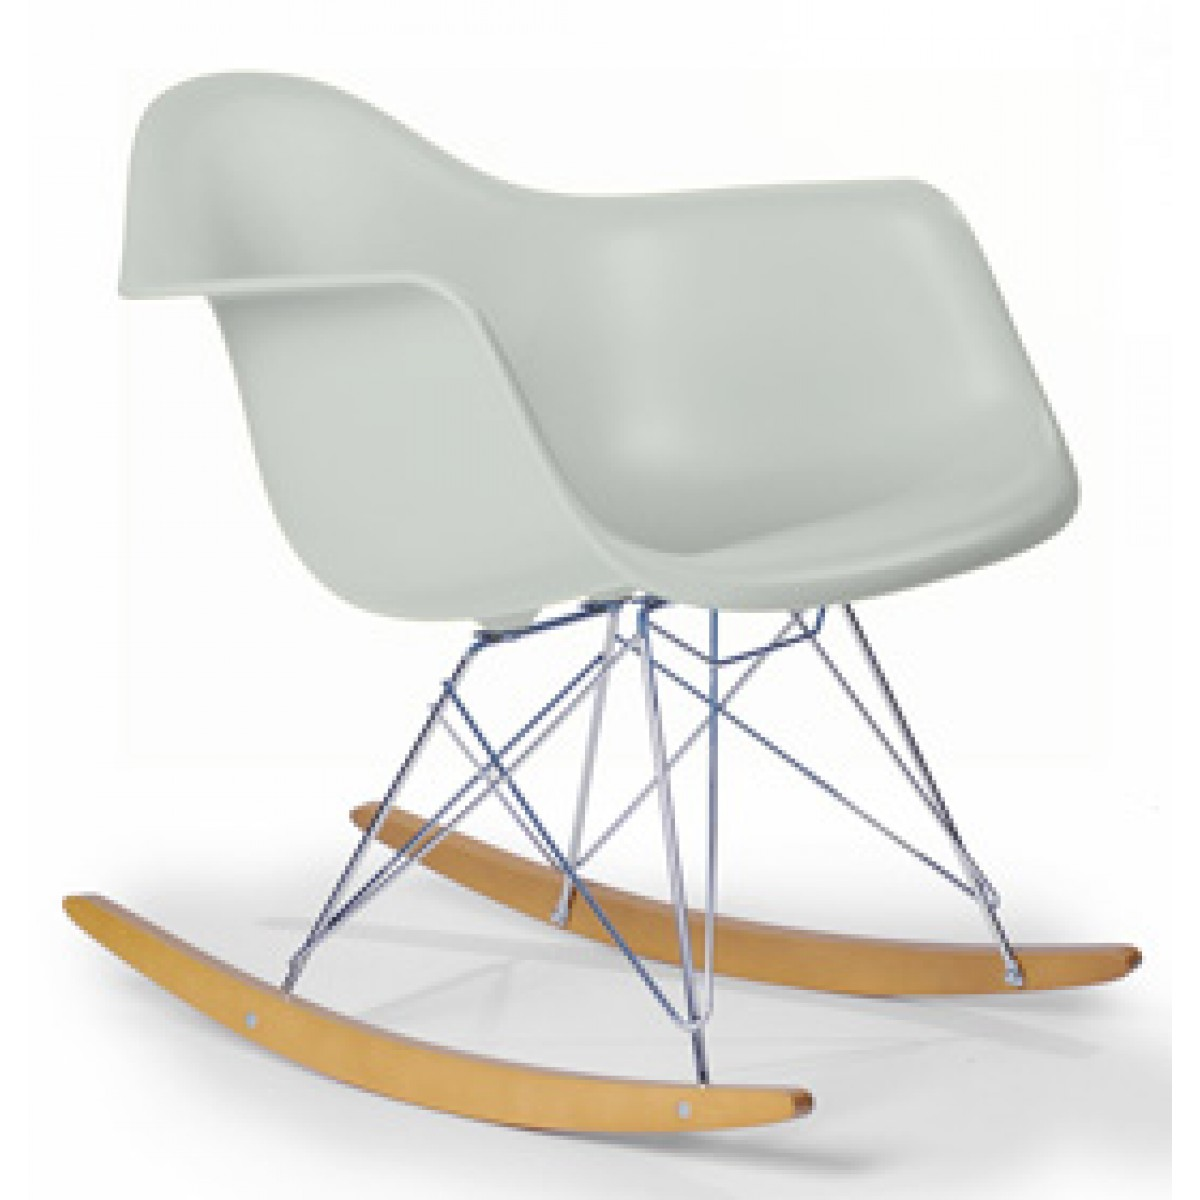 Image of: Eames Rocking Chair Style